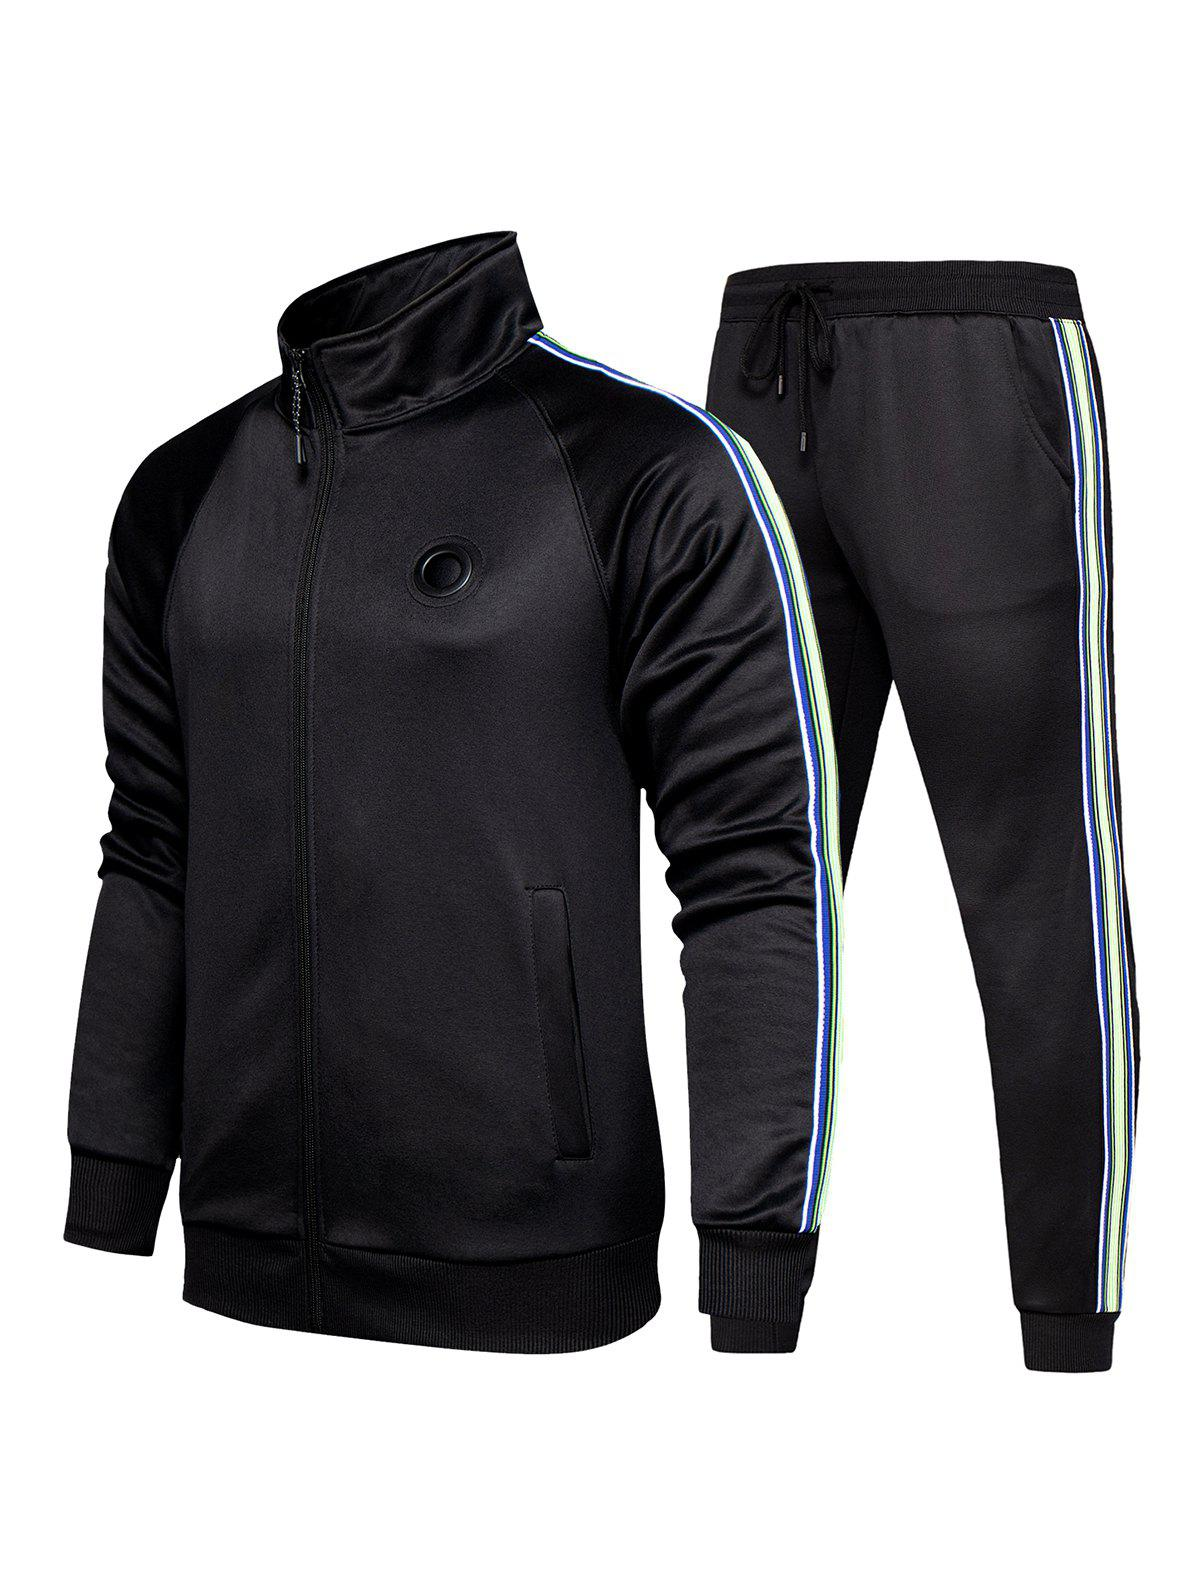 Latest Striped Two Piece Gym Outfits